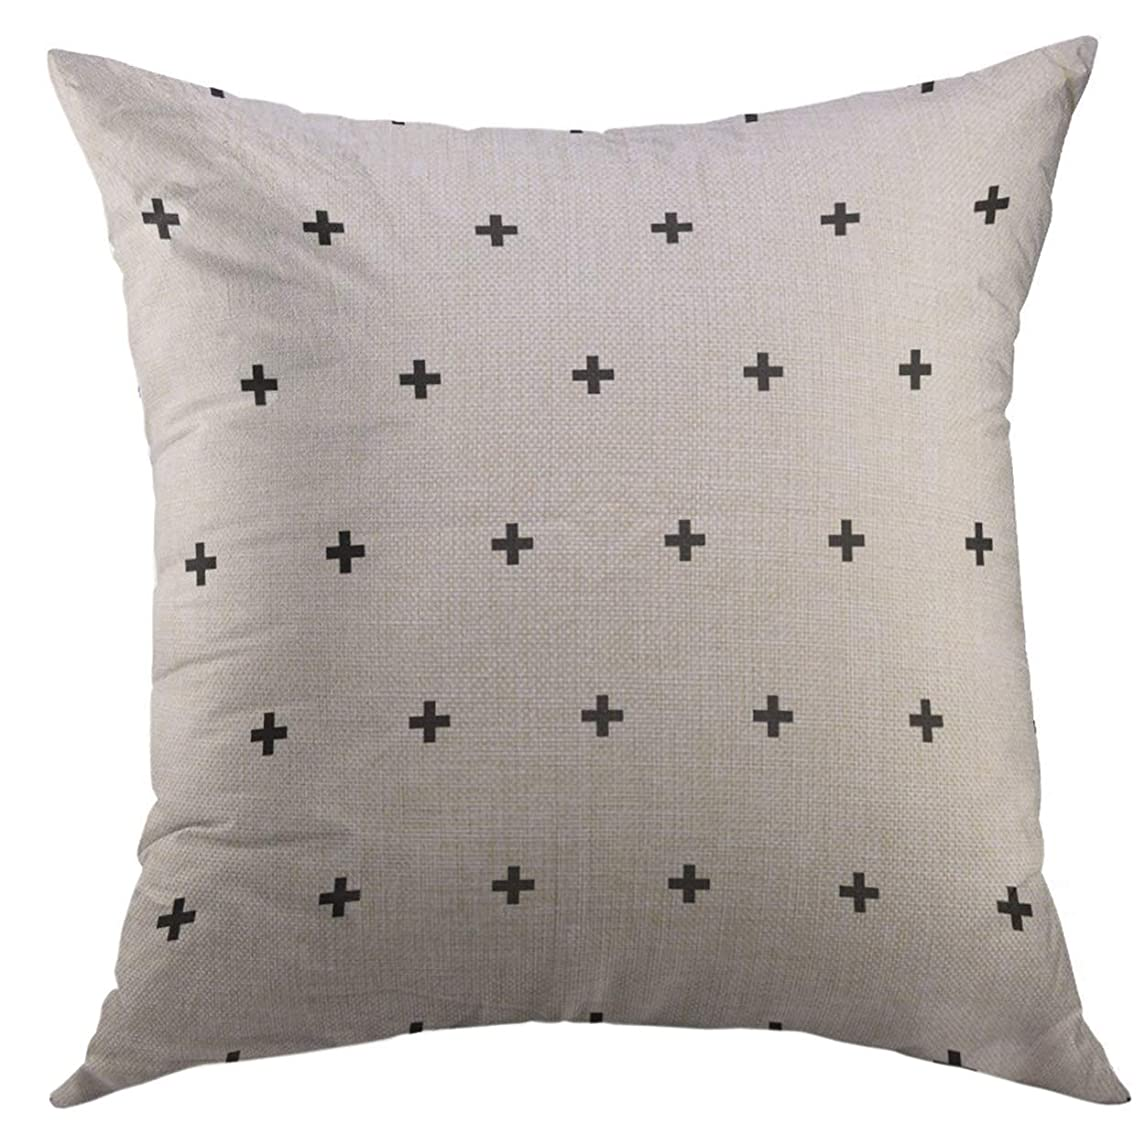 Mugod Pillow Cover White Plus Crosses Cross Swiss Sign Symbol Scandinavian Home Decorative Throw Pillow Cushion Cover 16x16 Inch Pillowcase